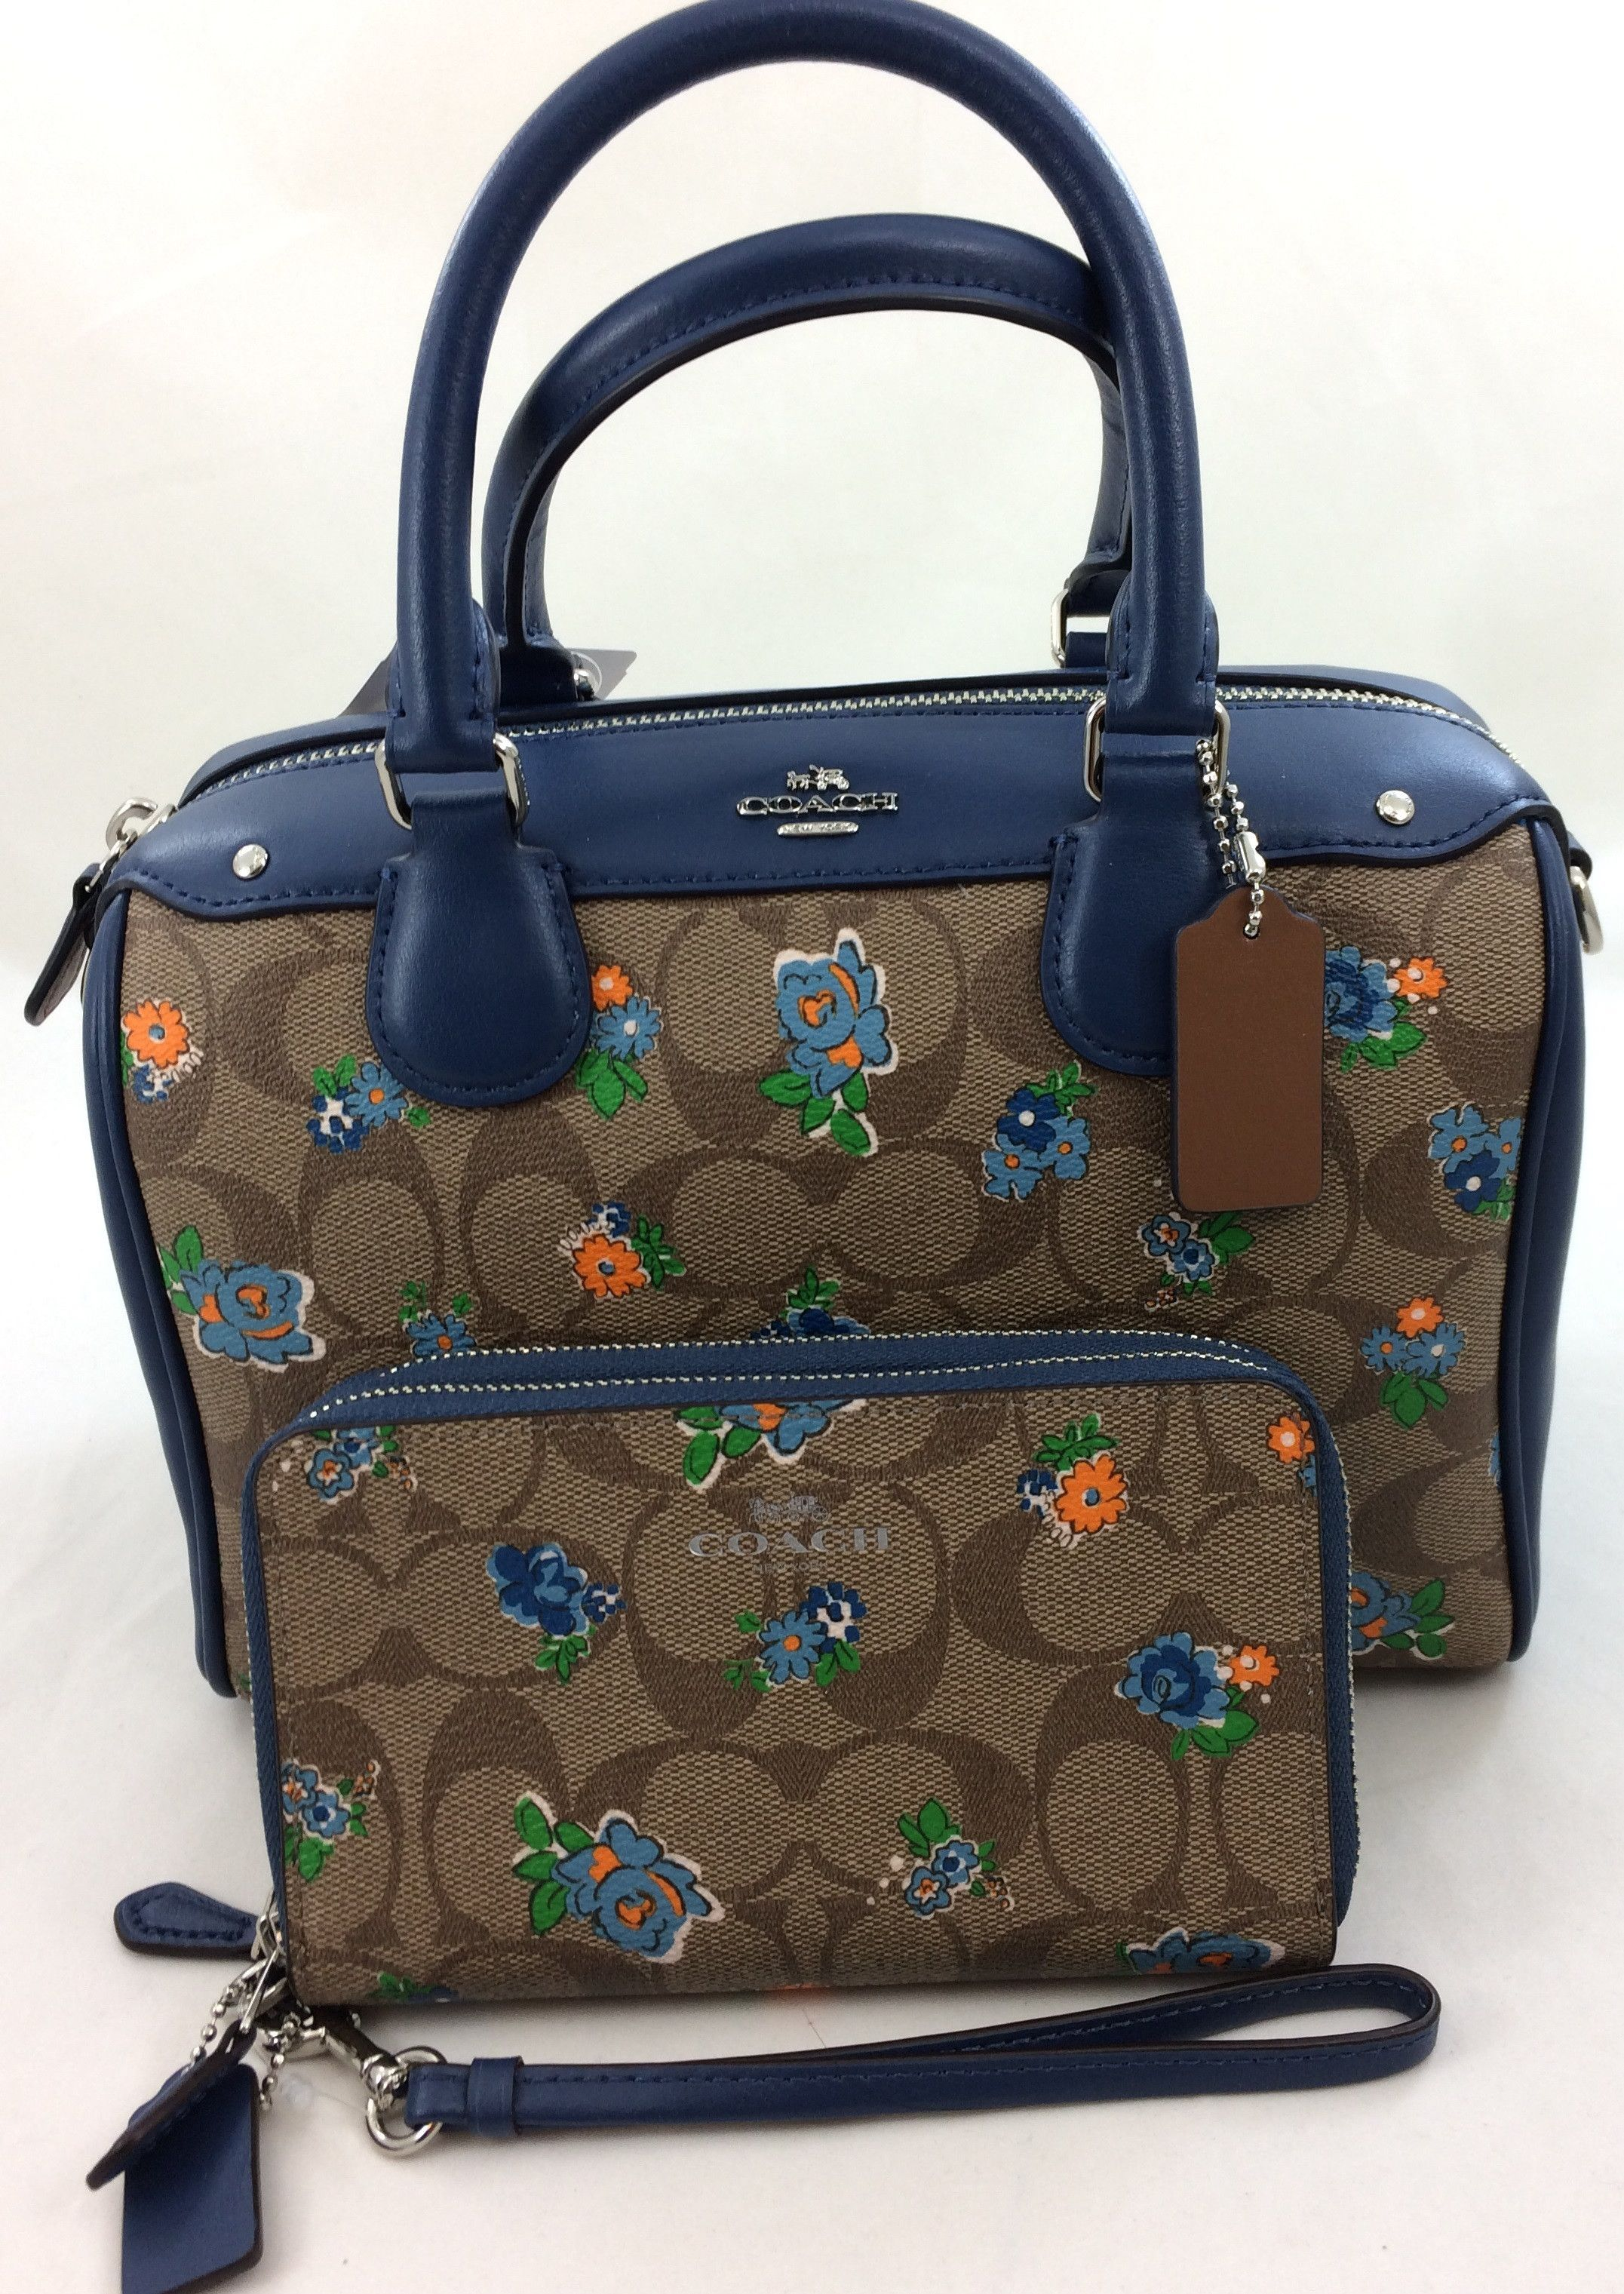 f19454b85735 New Authentic Coach F57534 Mini Bennett Satchel Shoulder Bag Floral Logo  Print in Blue Multi+Wallet Set